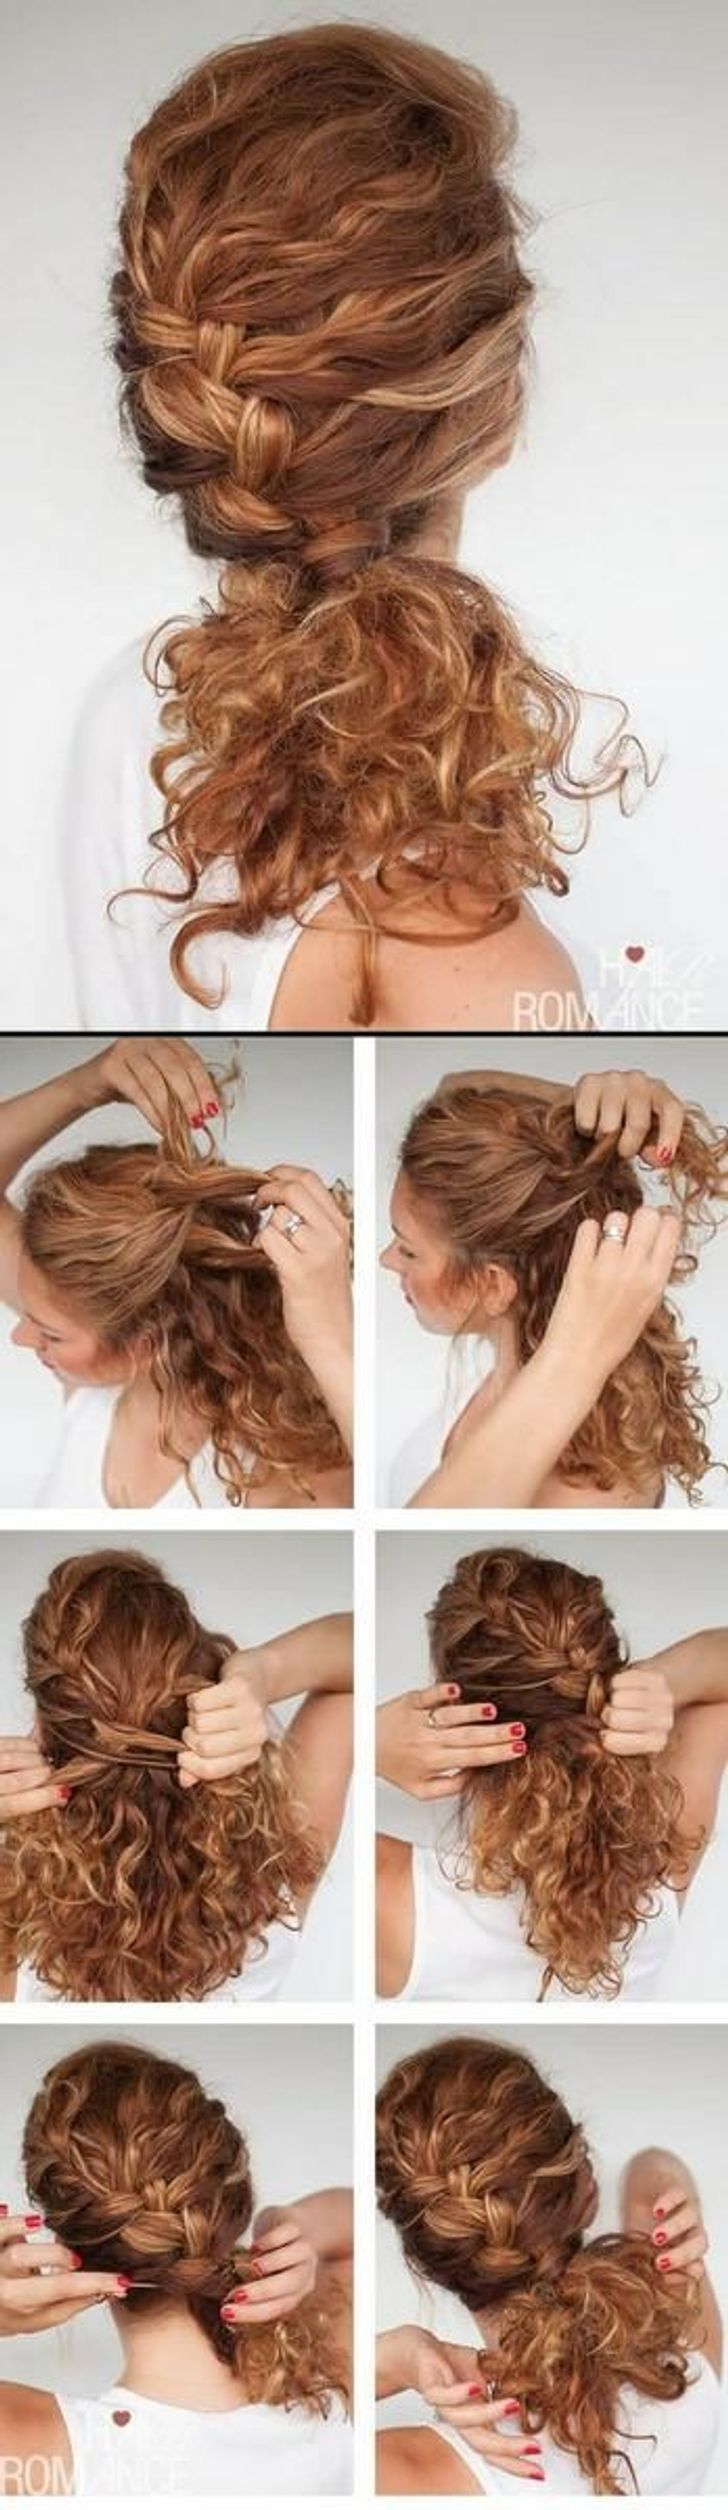 12 fantastic hairstyle tutorials for short and naturally curly hair